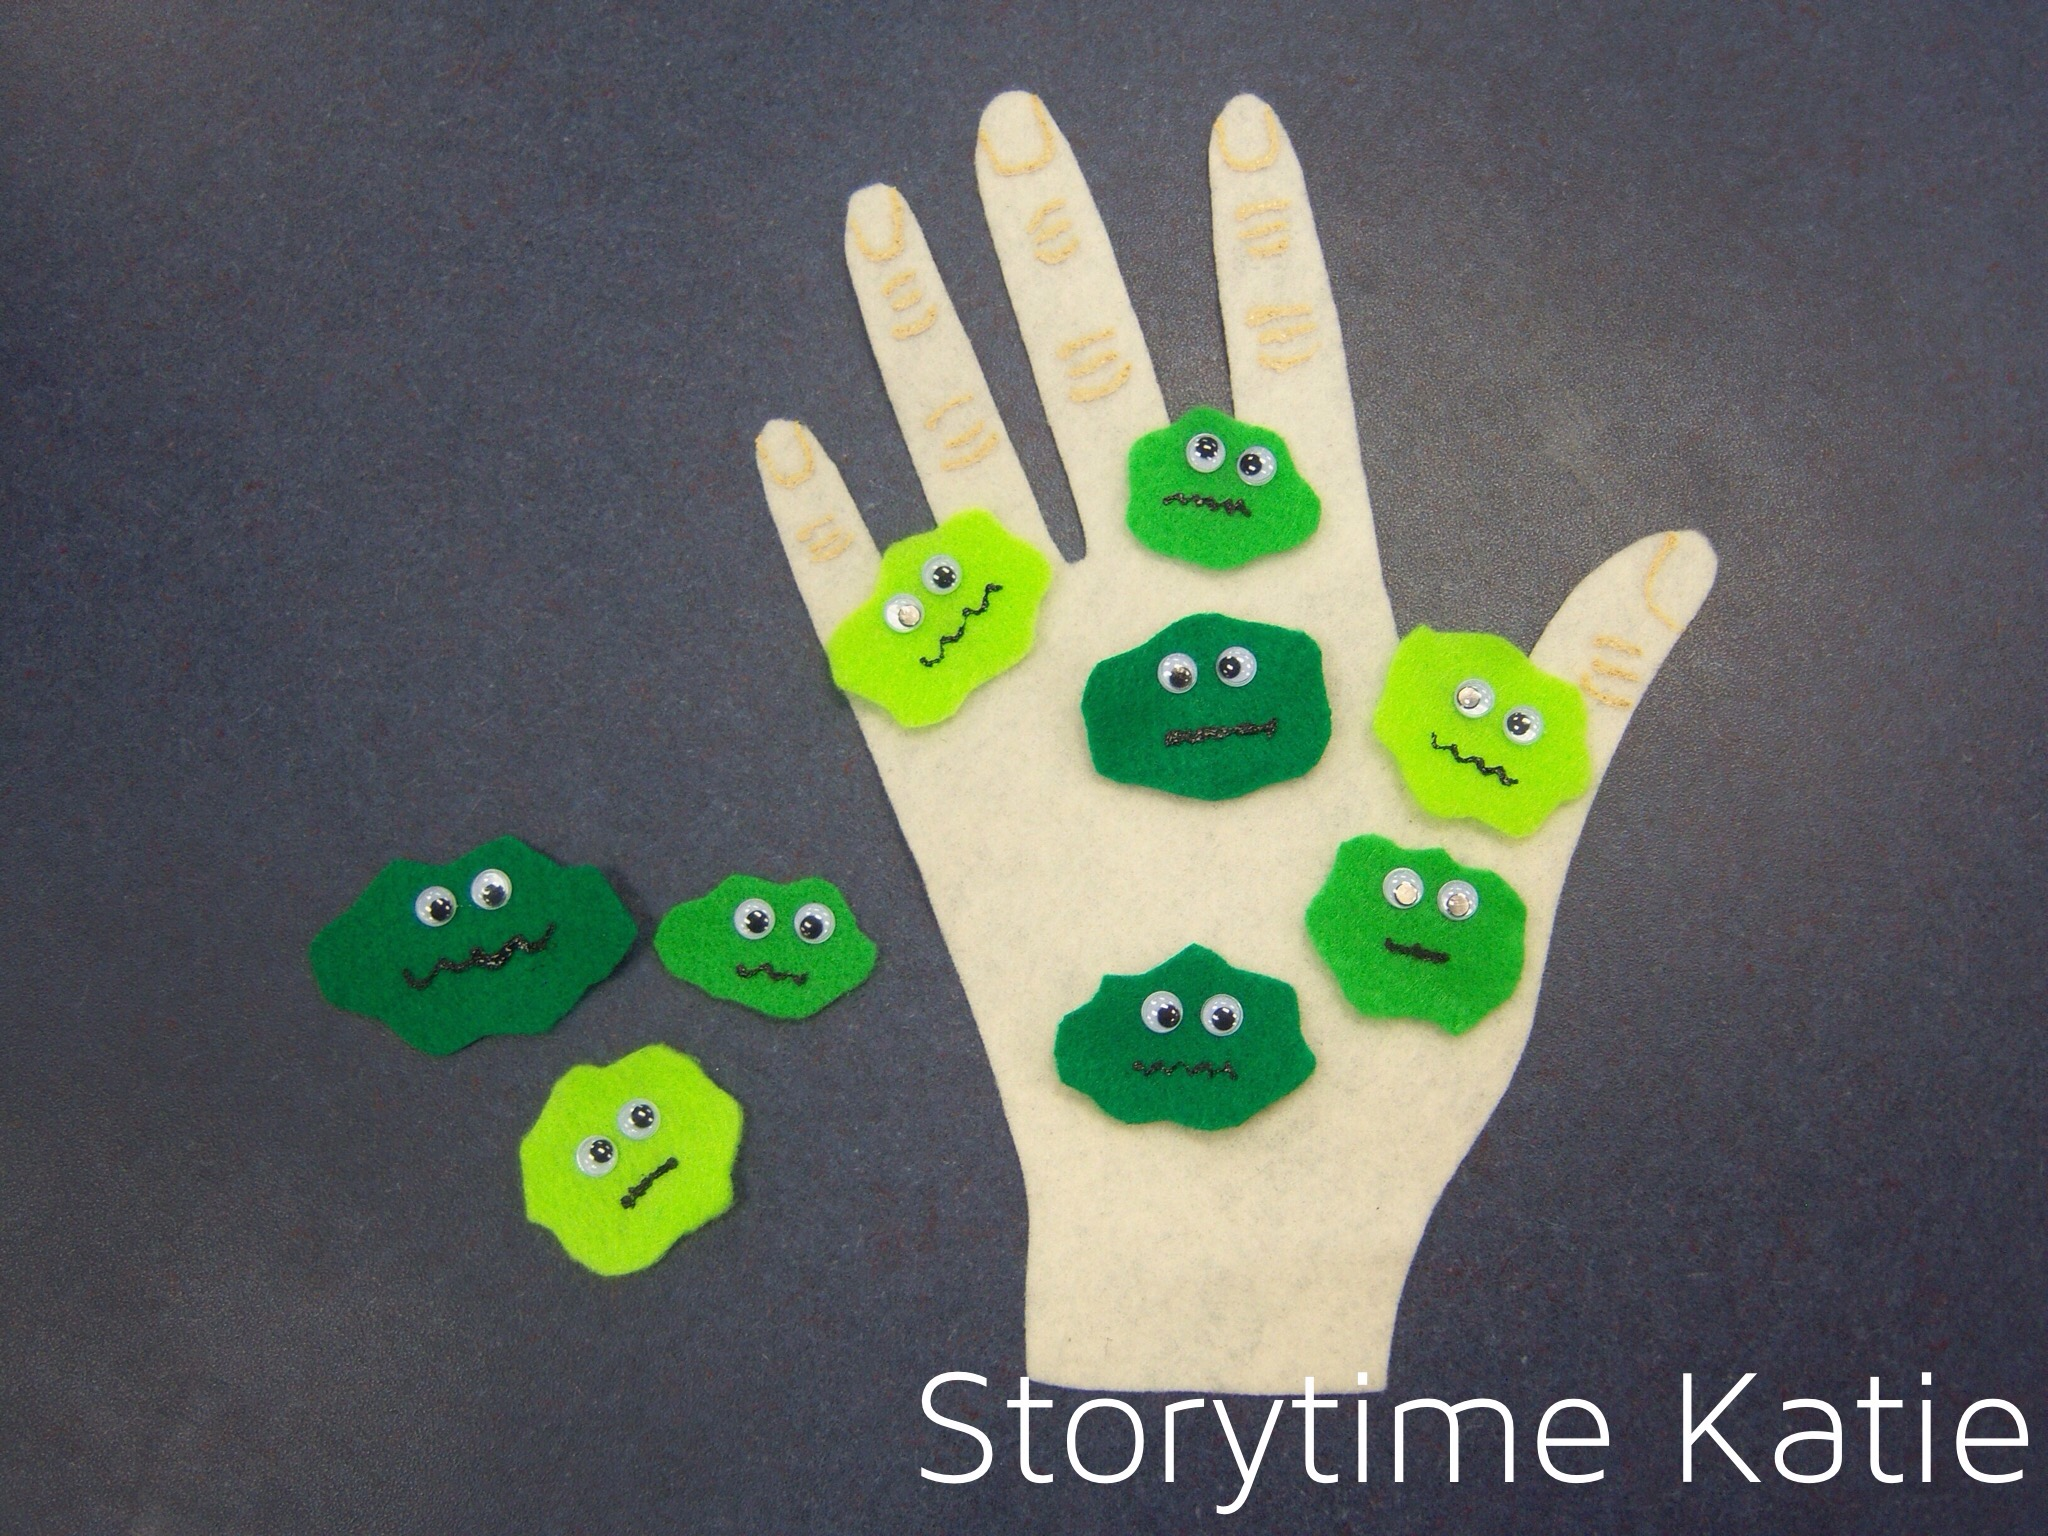 Flannel Friday: All The Little Germs – storytime katie